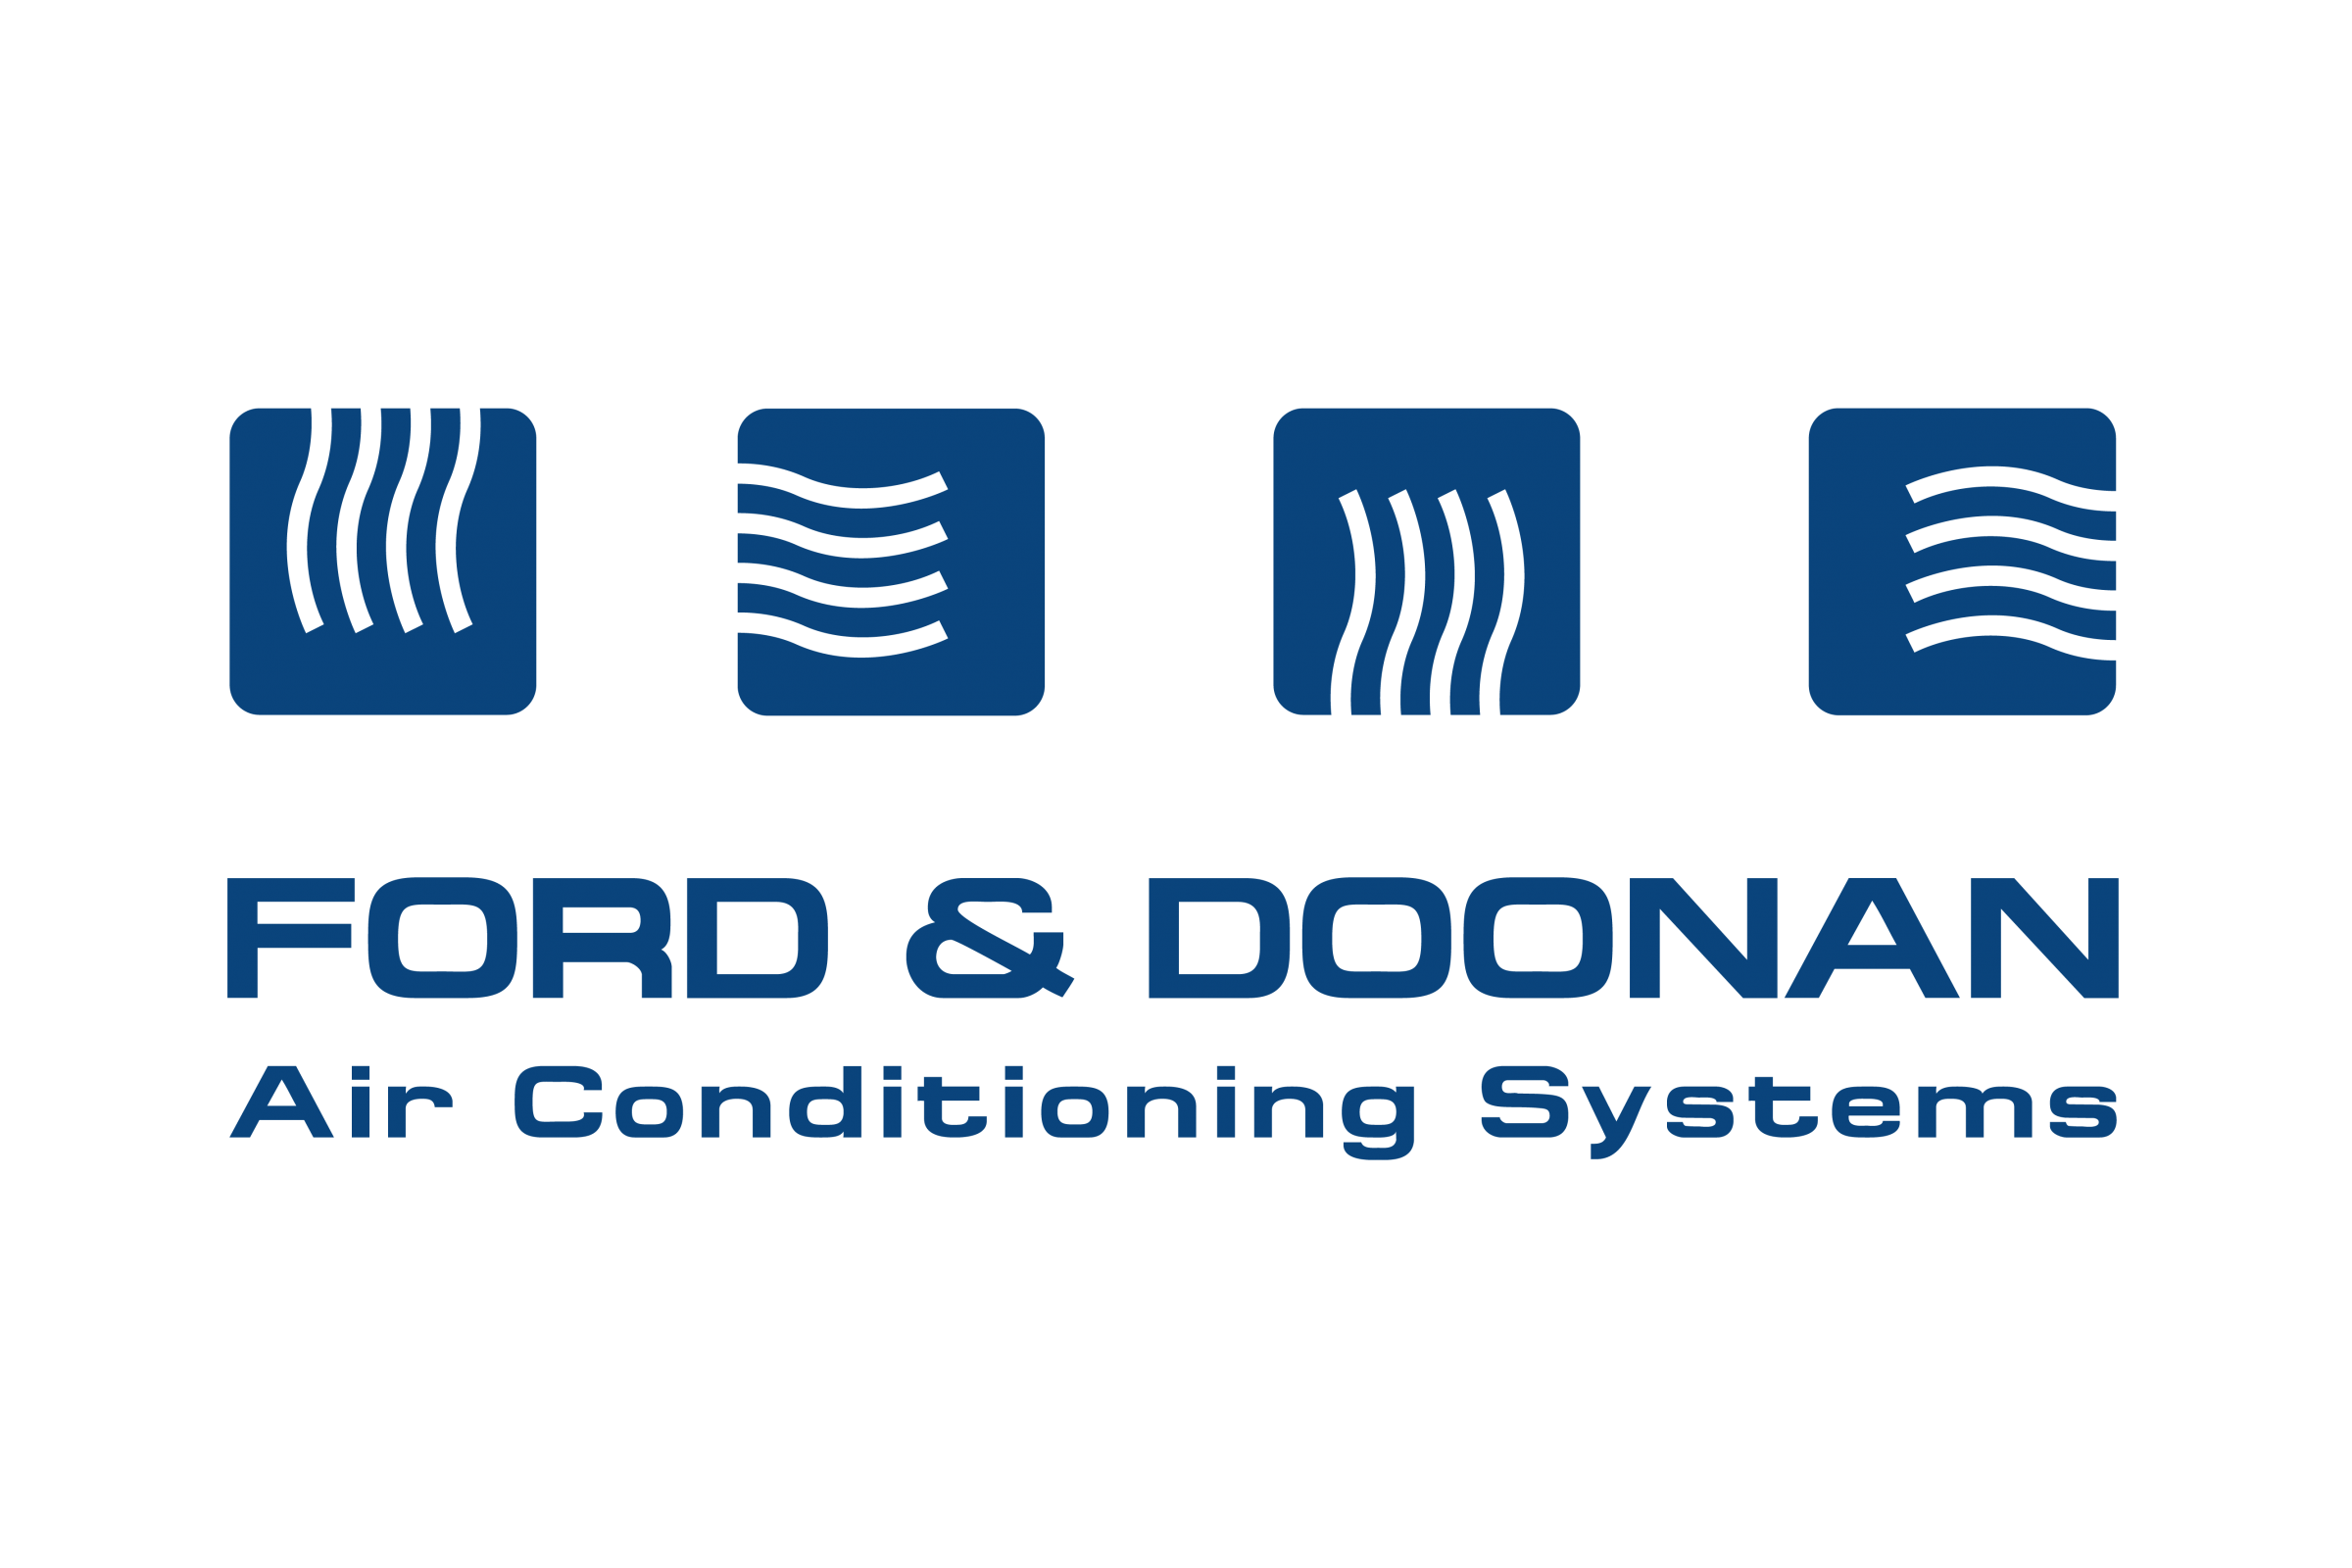 ford and doonan logo